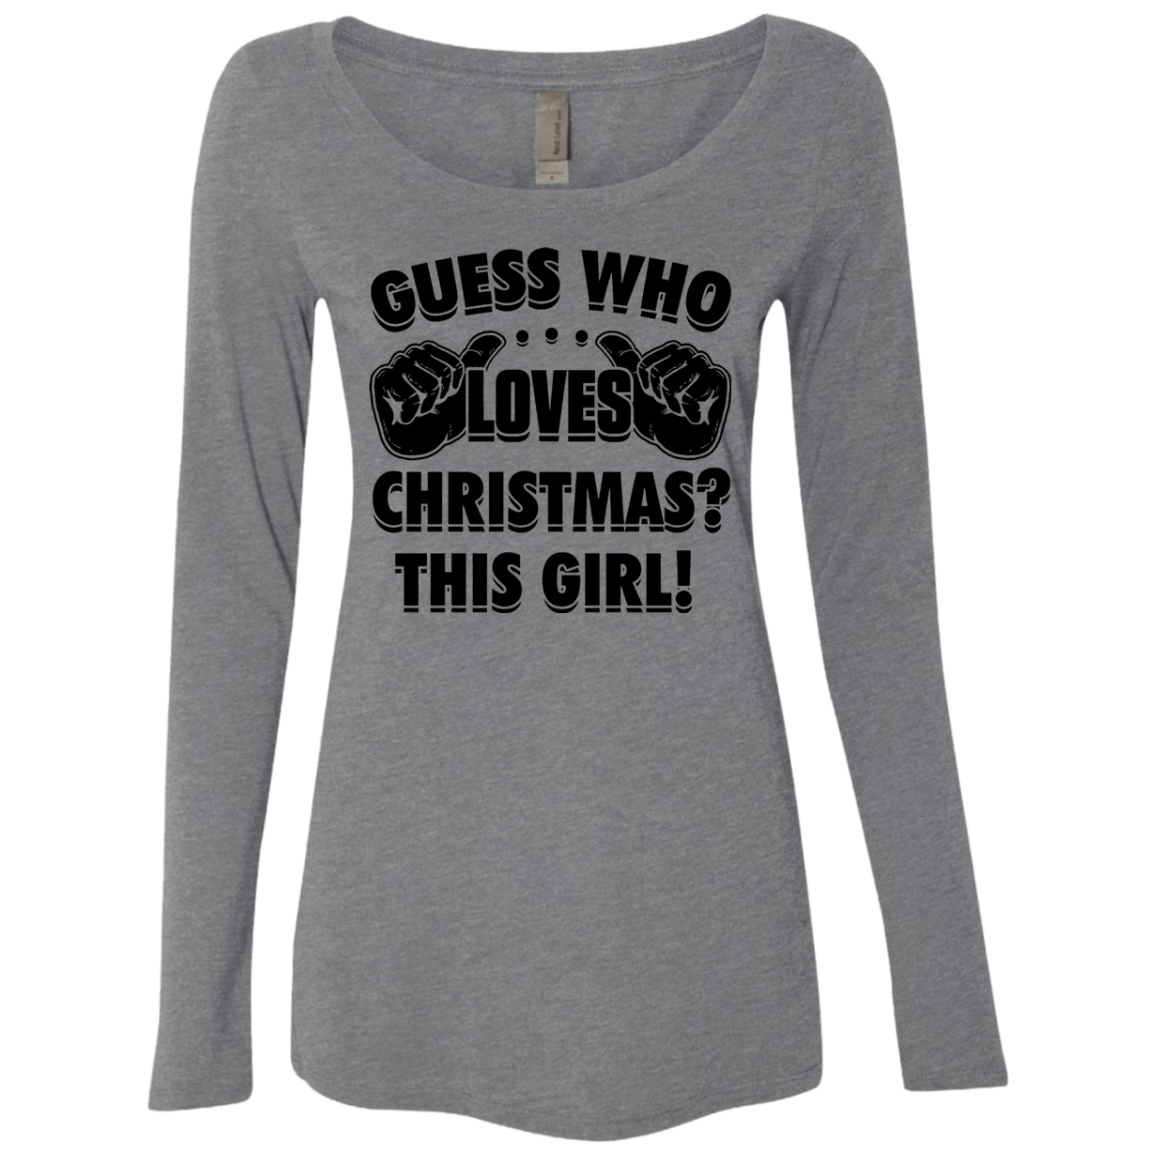 Guess Who Loves Christmas This Girl Women's Long Sleeve Tee